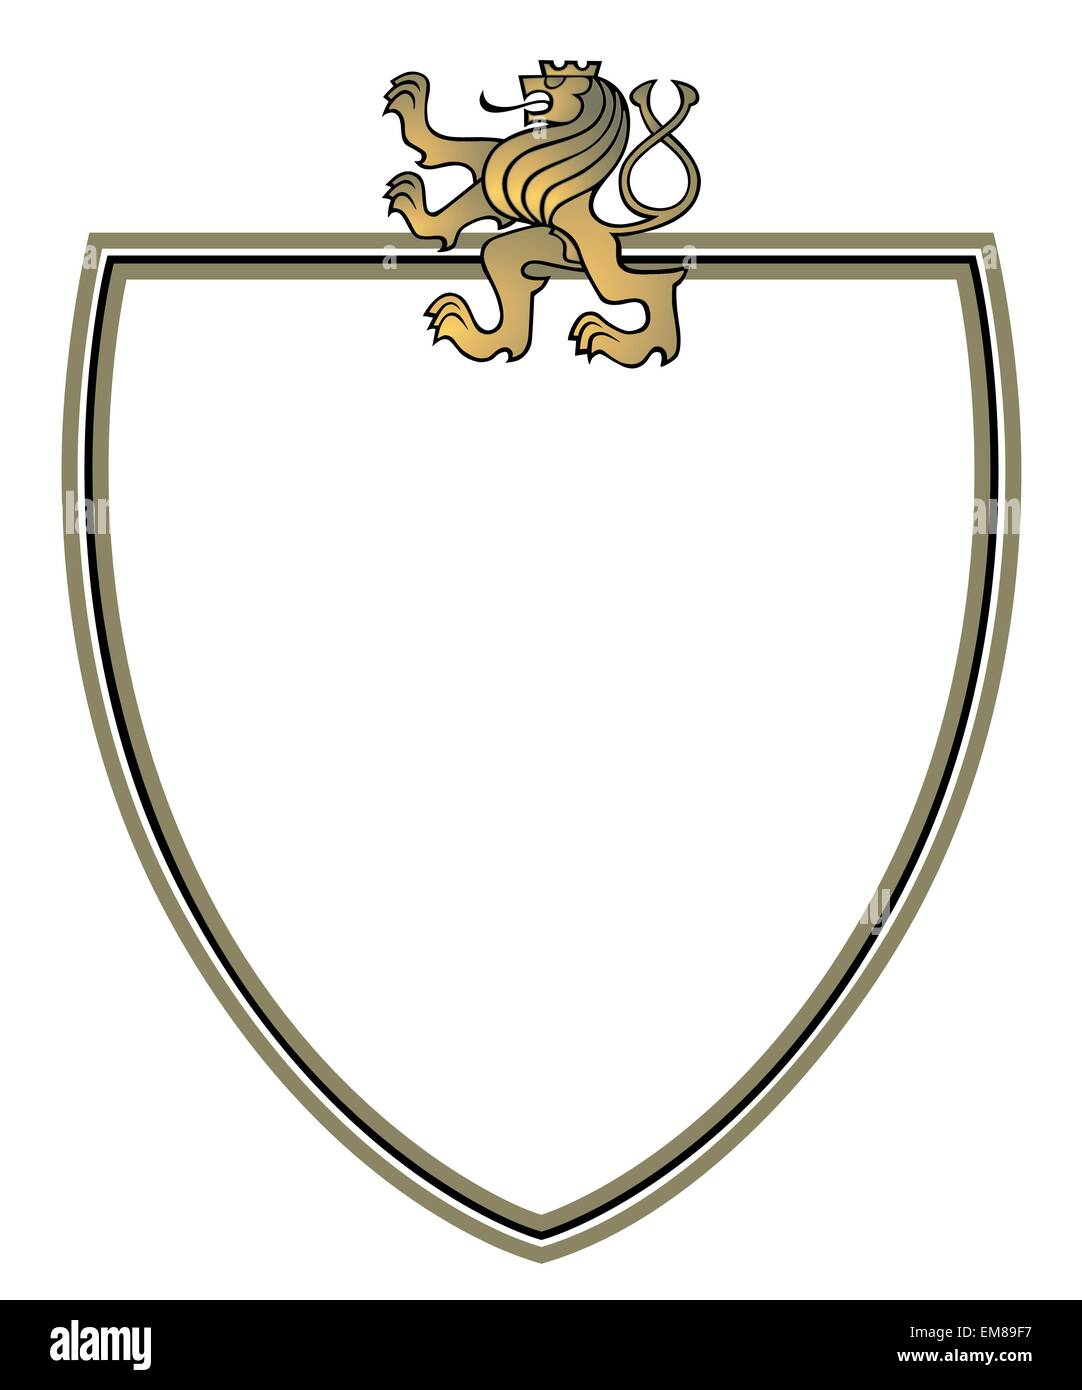 crest with golden lion - Stock Image